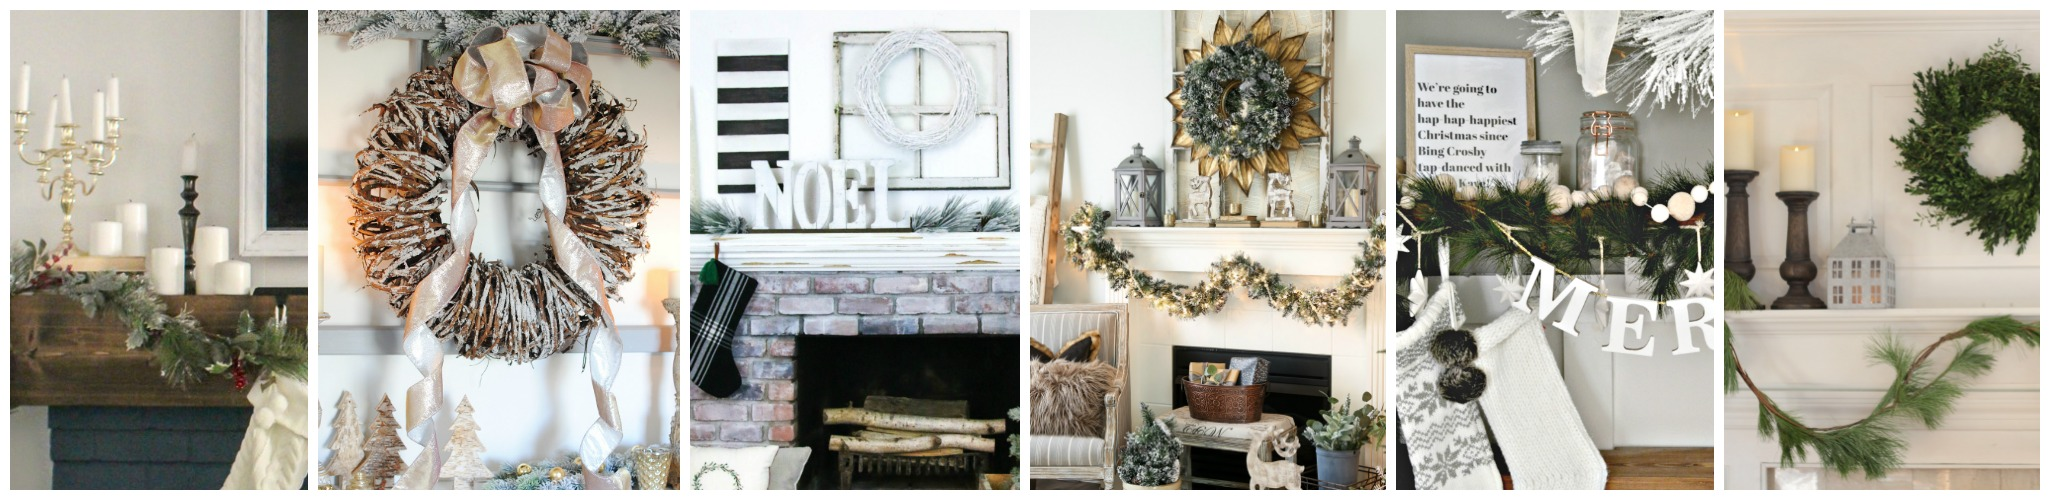 Holiday mantel inspiration